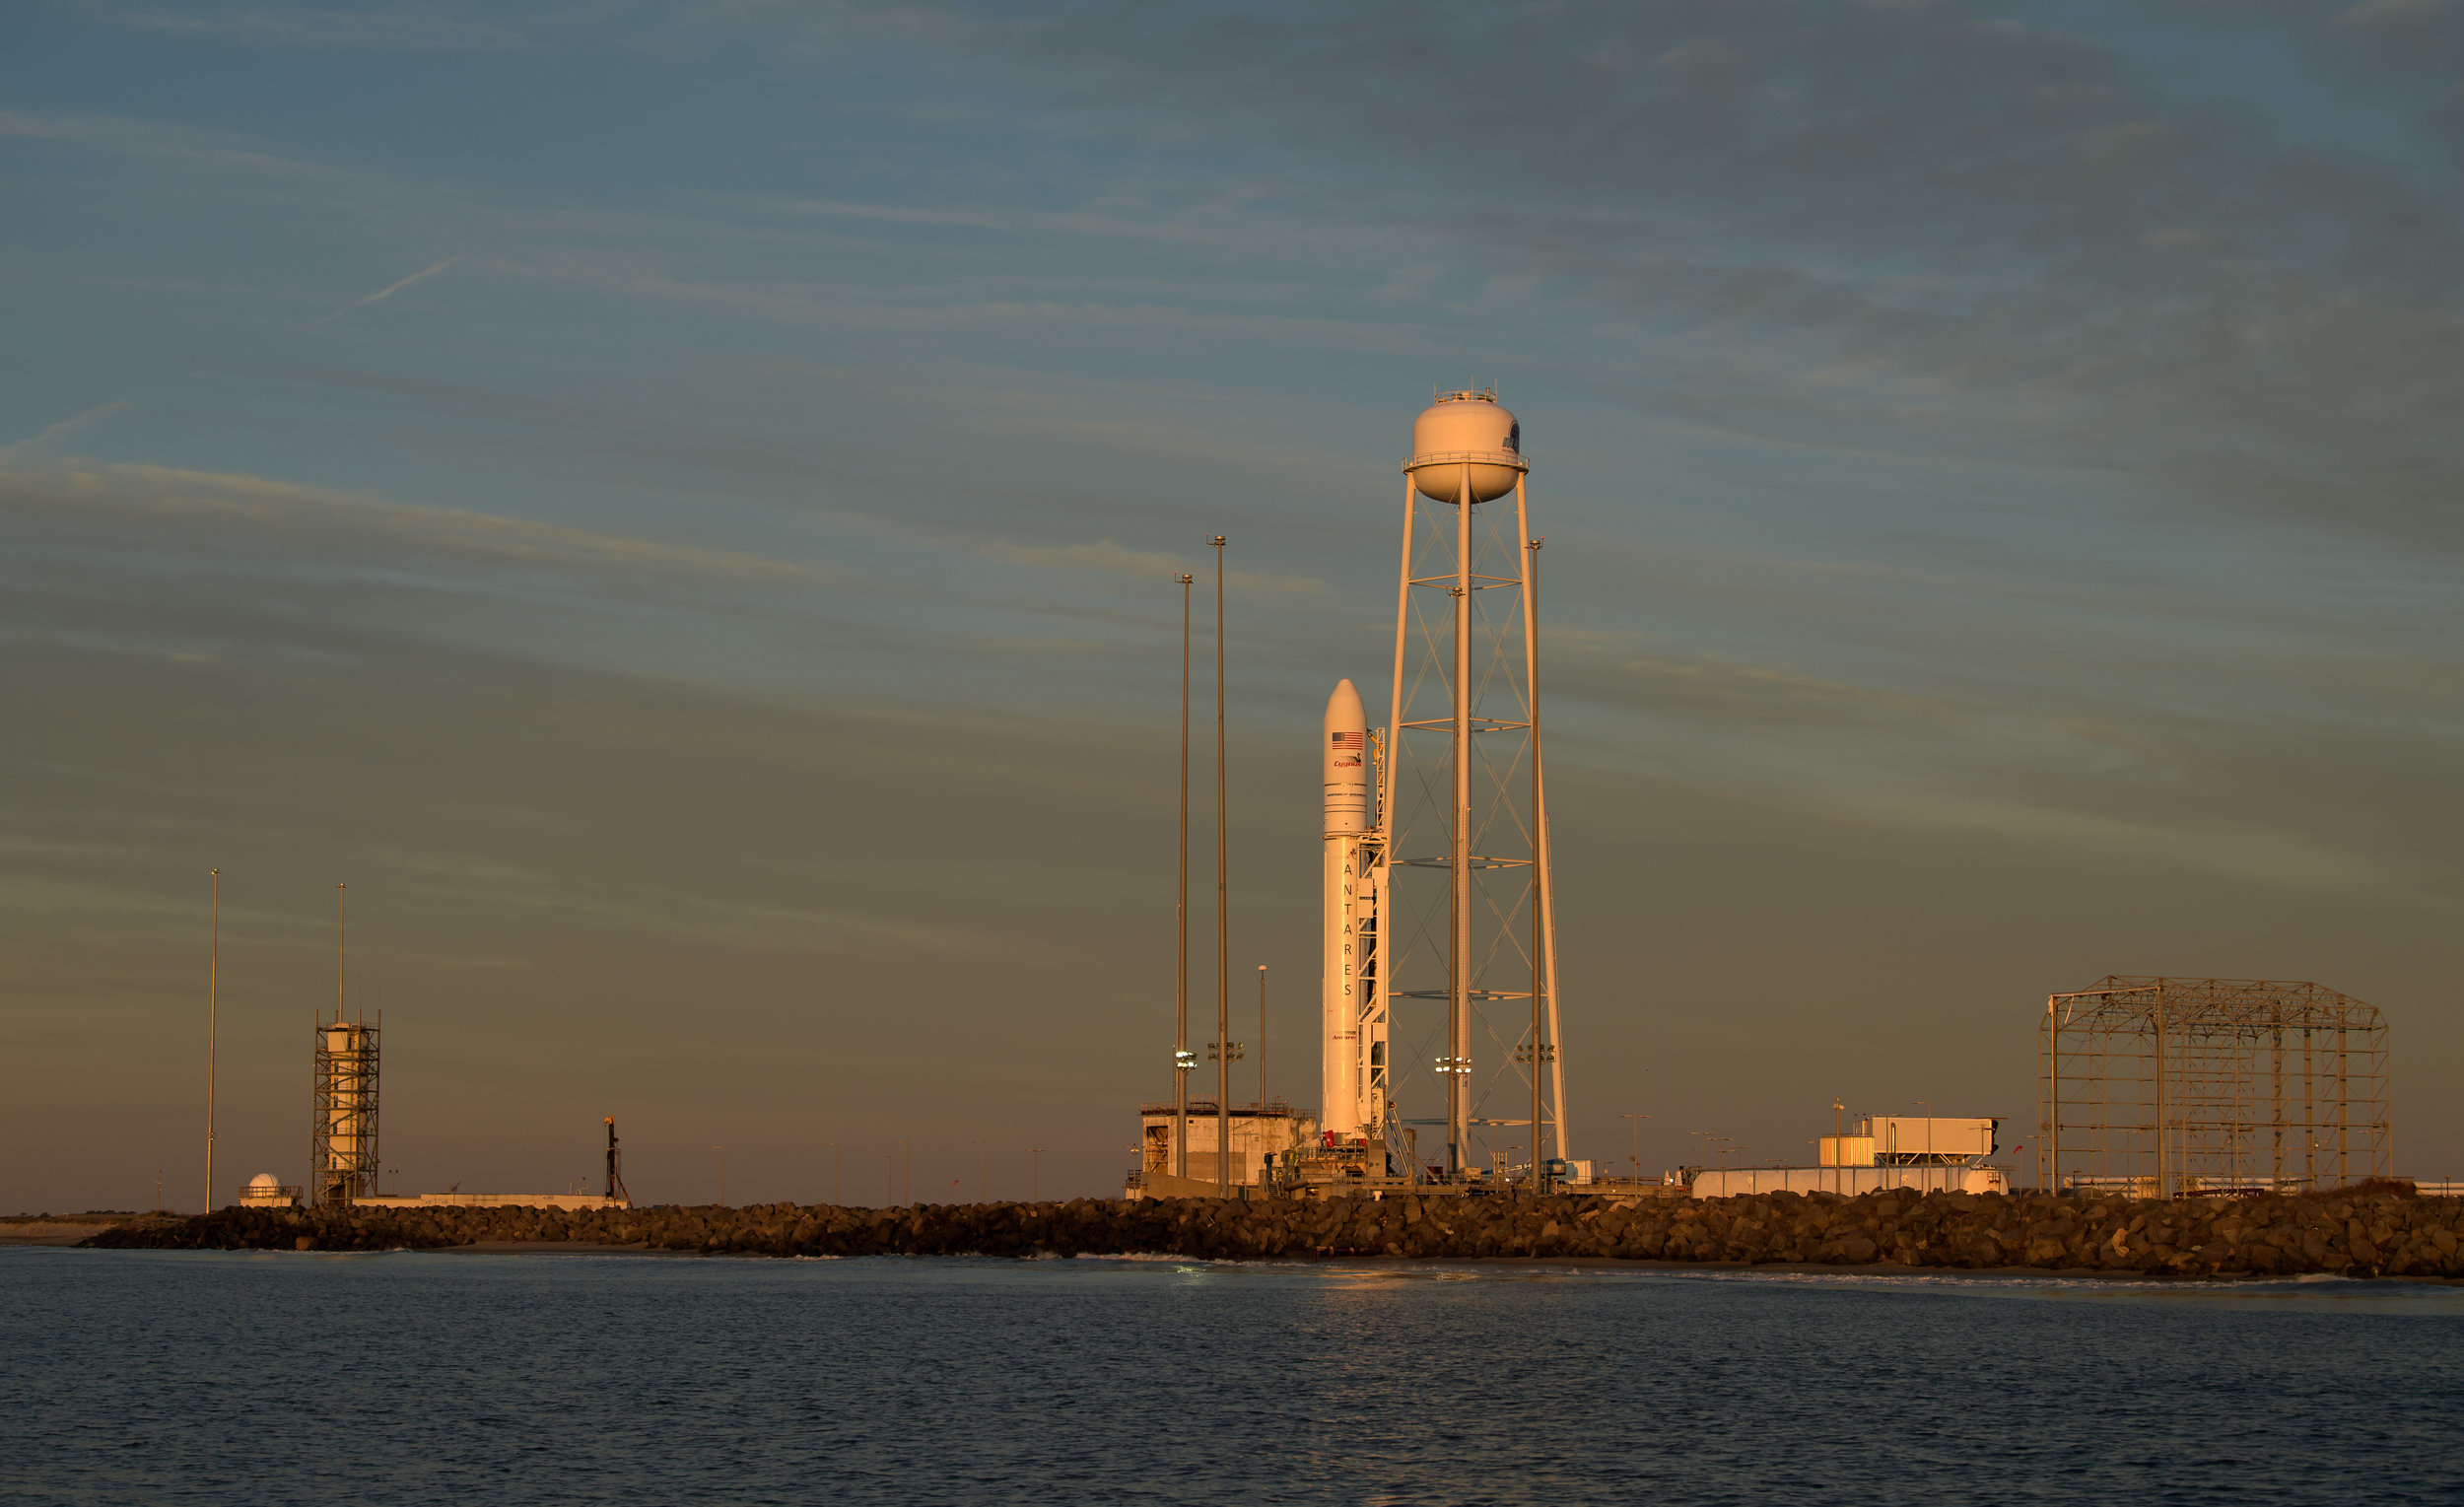 An Antares 230 rocket sits at the launch pad in preparation for liftoff on April 17, 2019. Credit: NASA/Bill Ingalls